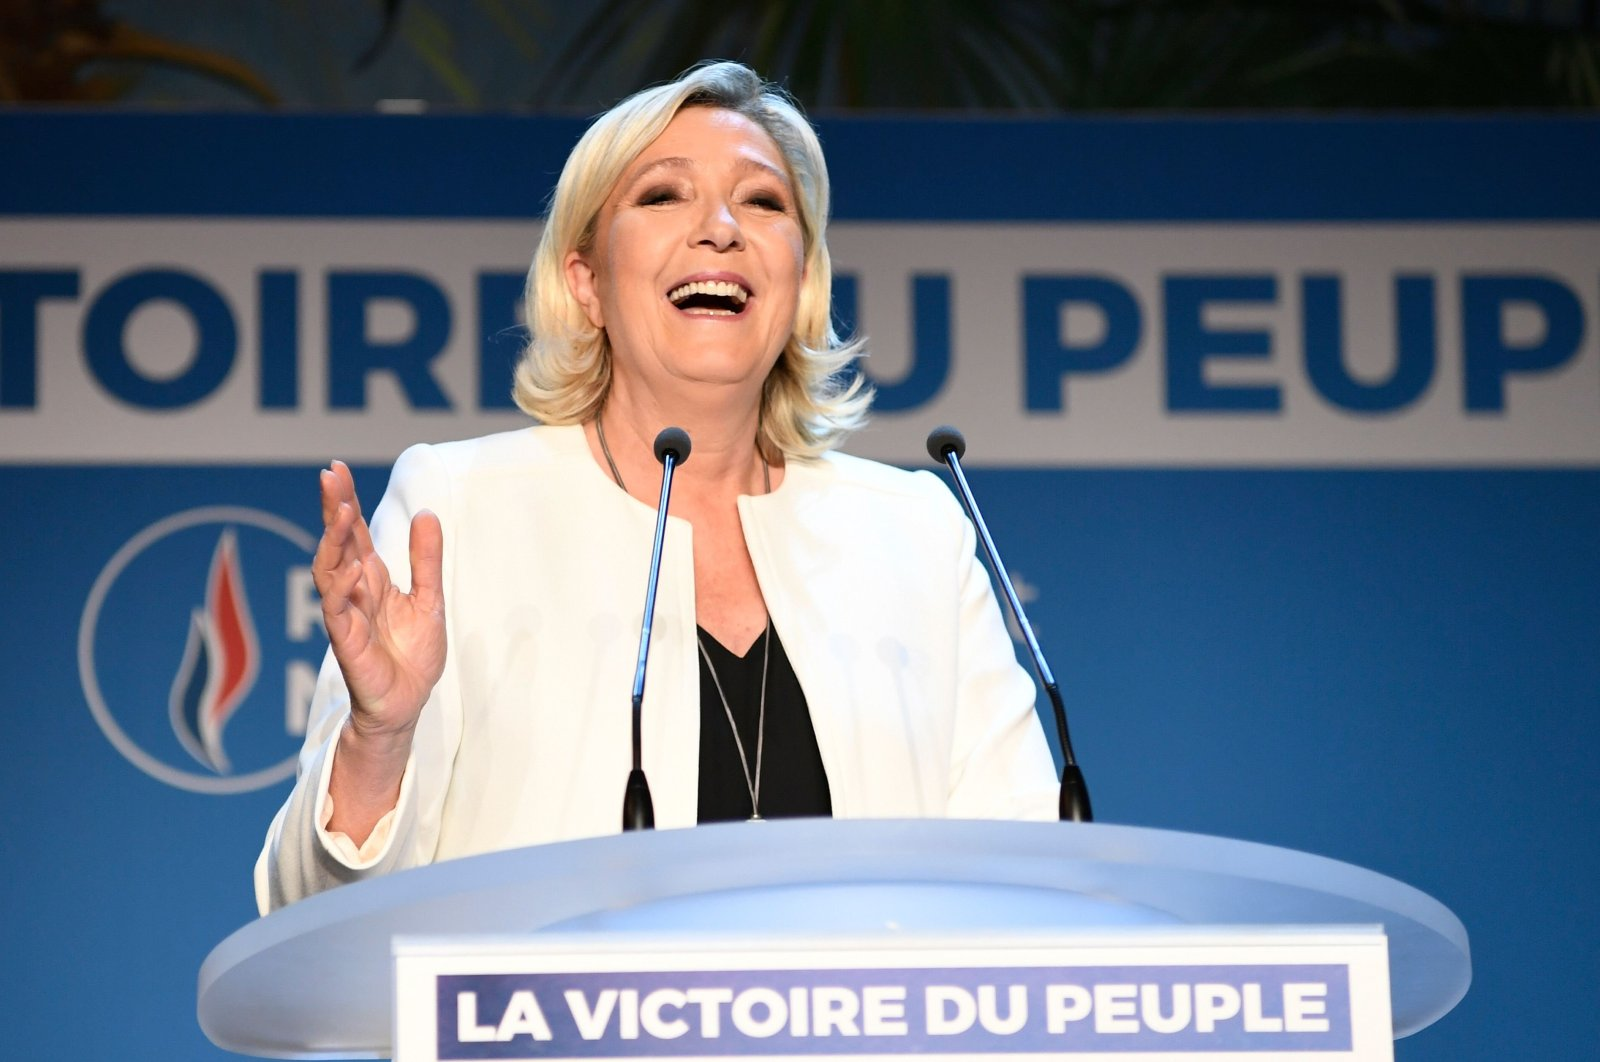 Marine Le Pen, French far-right Rassemblement National (RN) president and member of parliament, delivers a speech at La Palmeraie, in Paris, France, May 26, 2019. (AFP Photo)